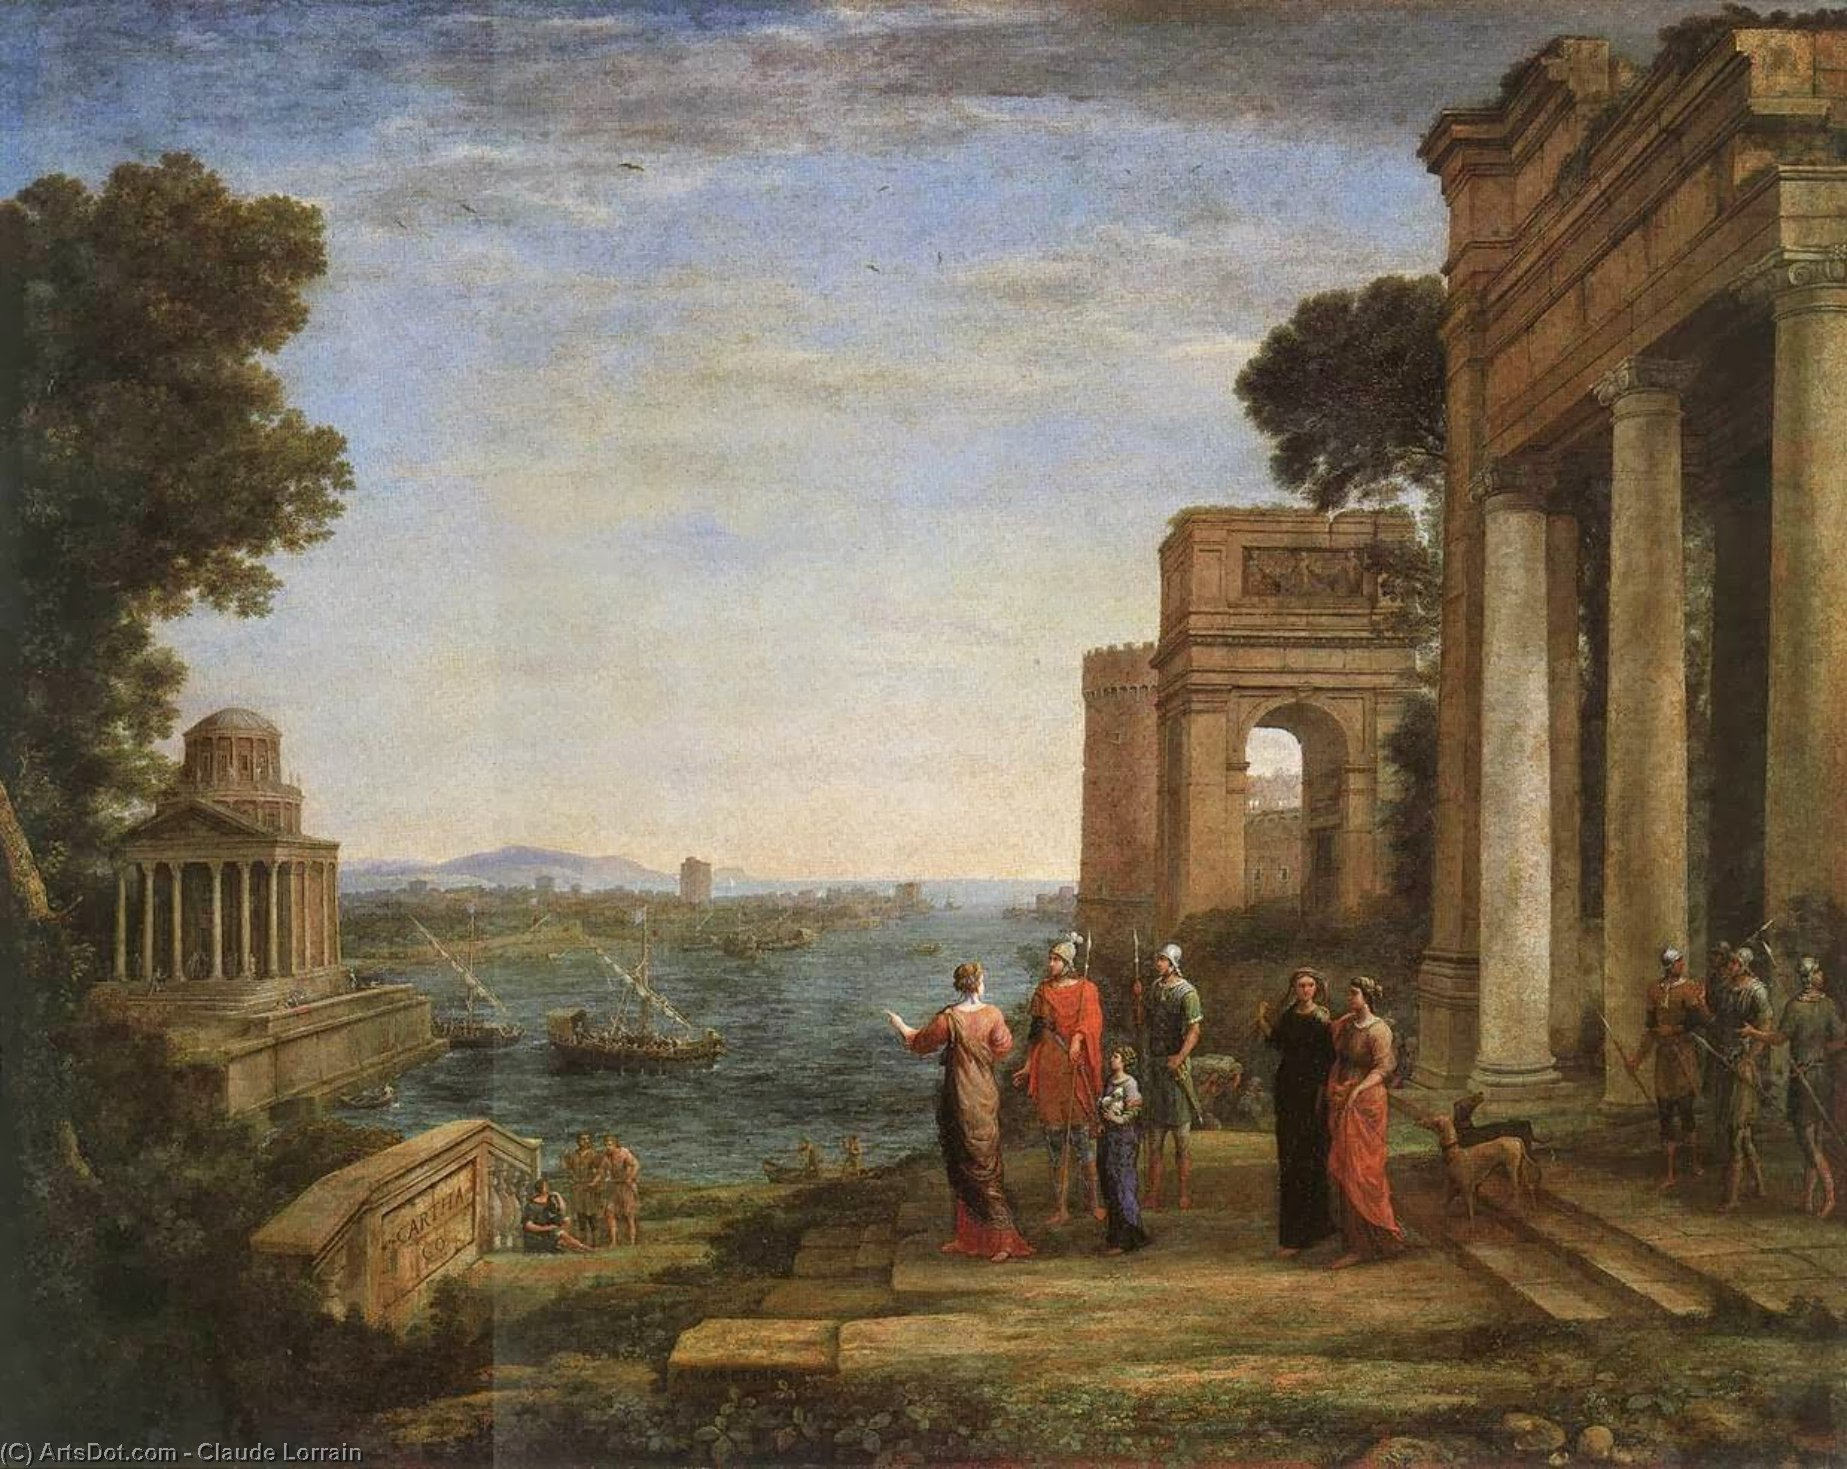 Aeneas and Dido in Carthage, Oil On Canvas by Claude Lorrain (Claude Gellée)